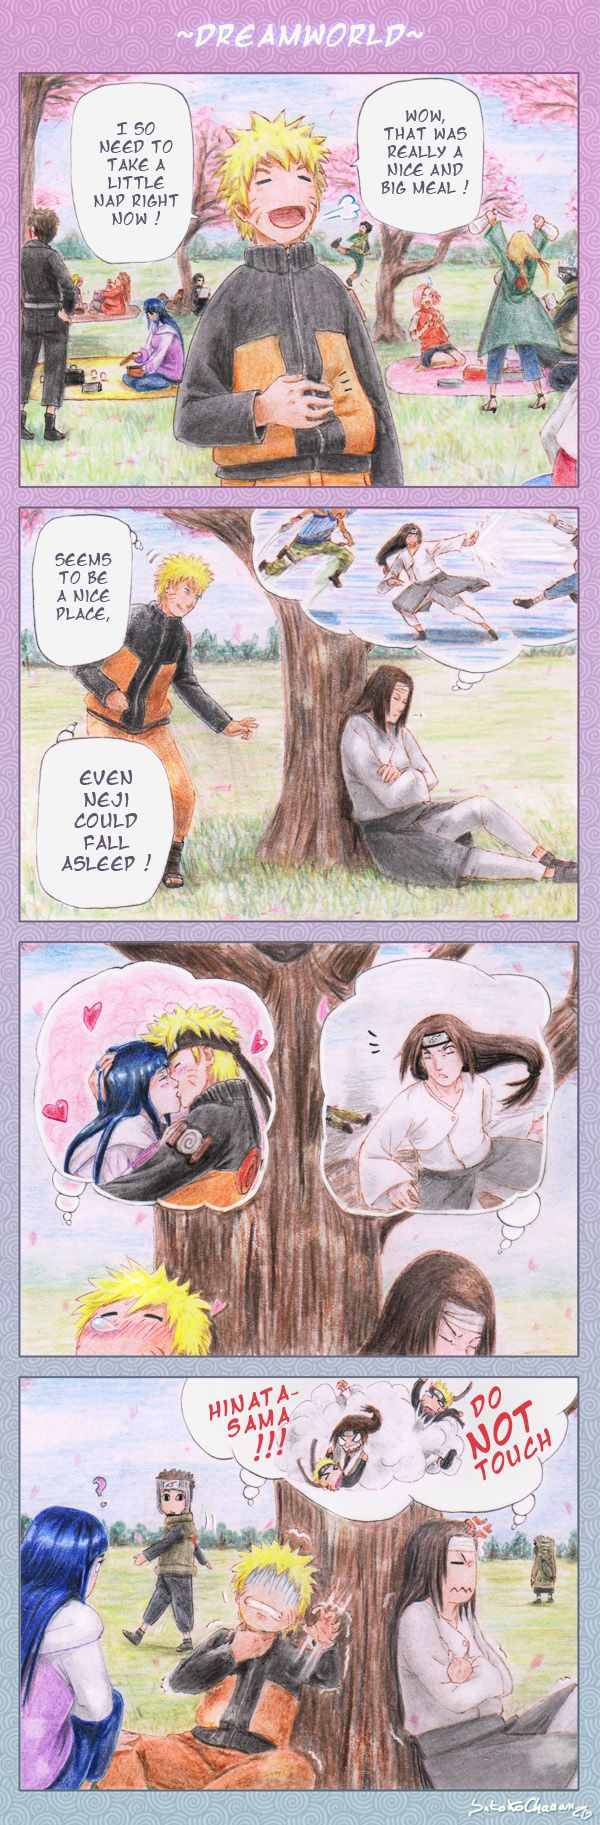 Naruto in Dreamworld, I love Neji being like Hinata's big brother